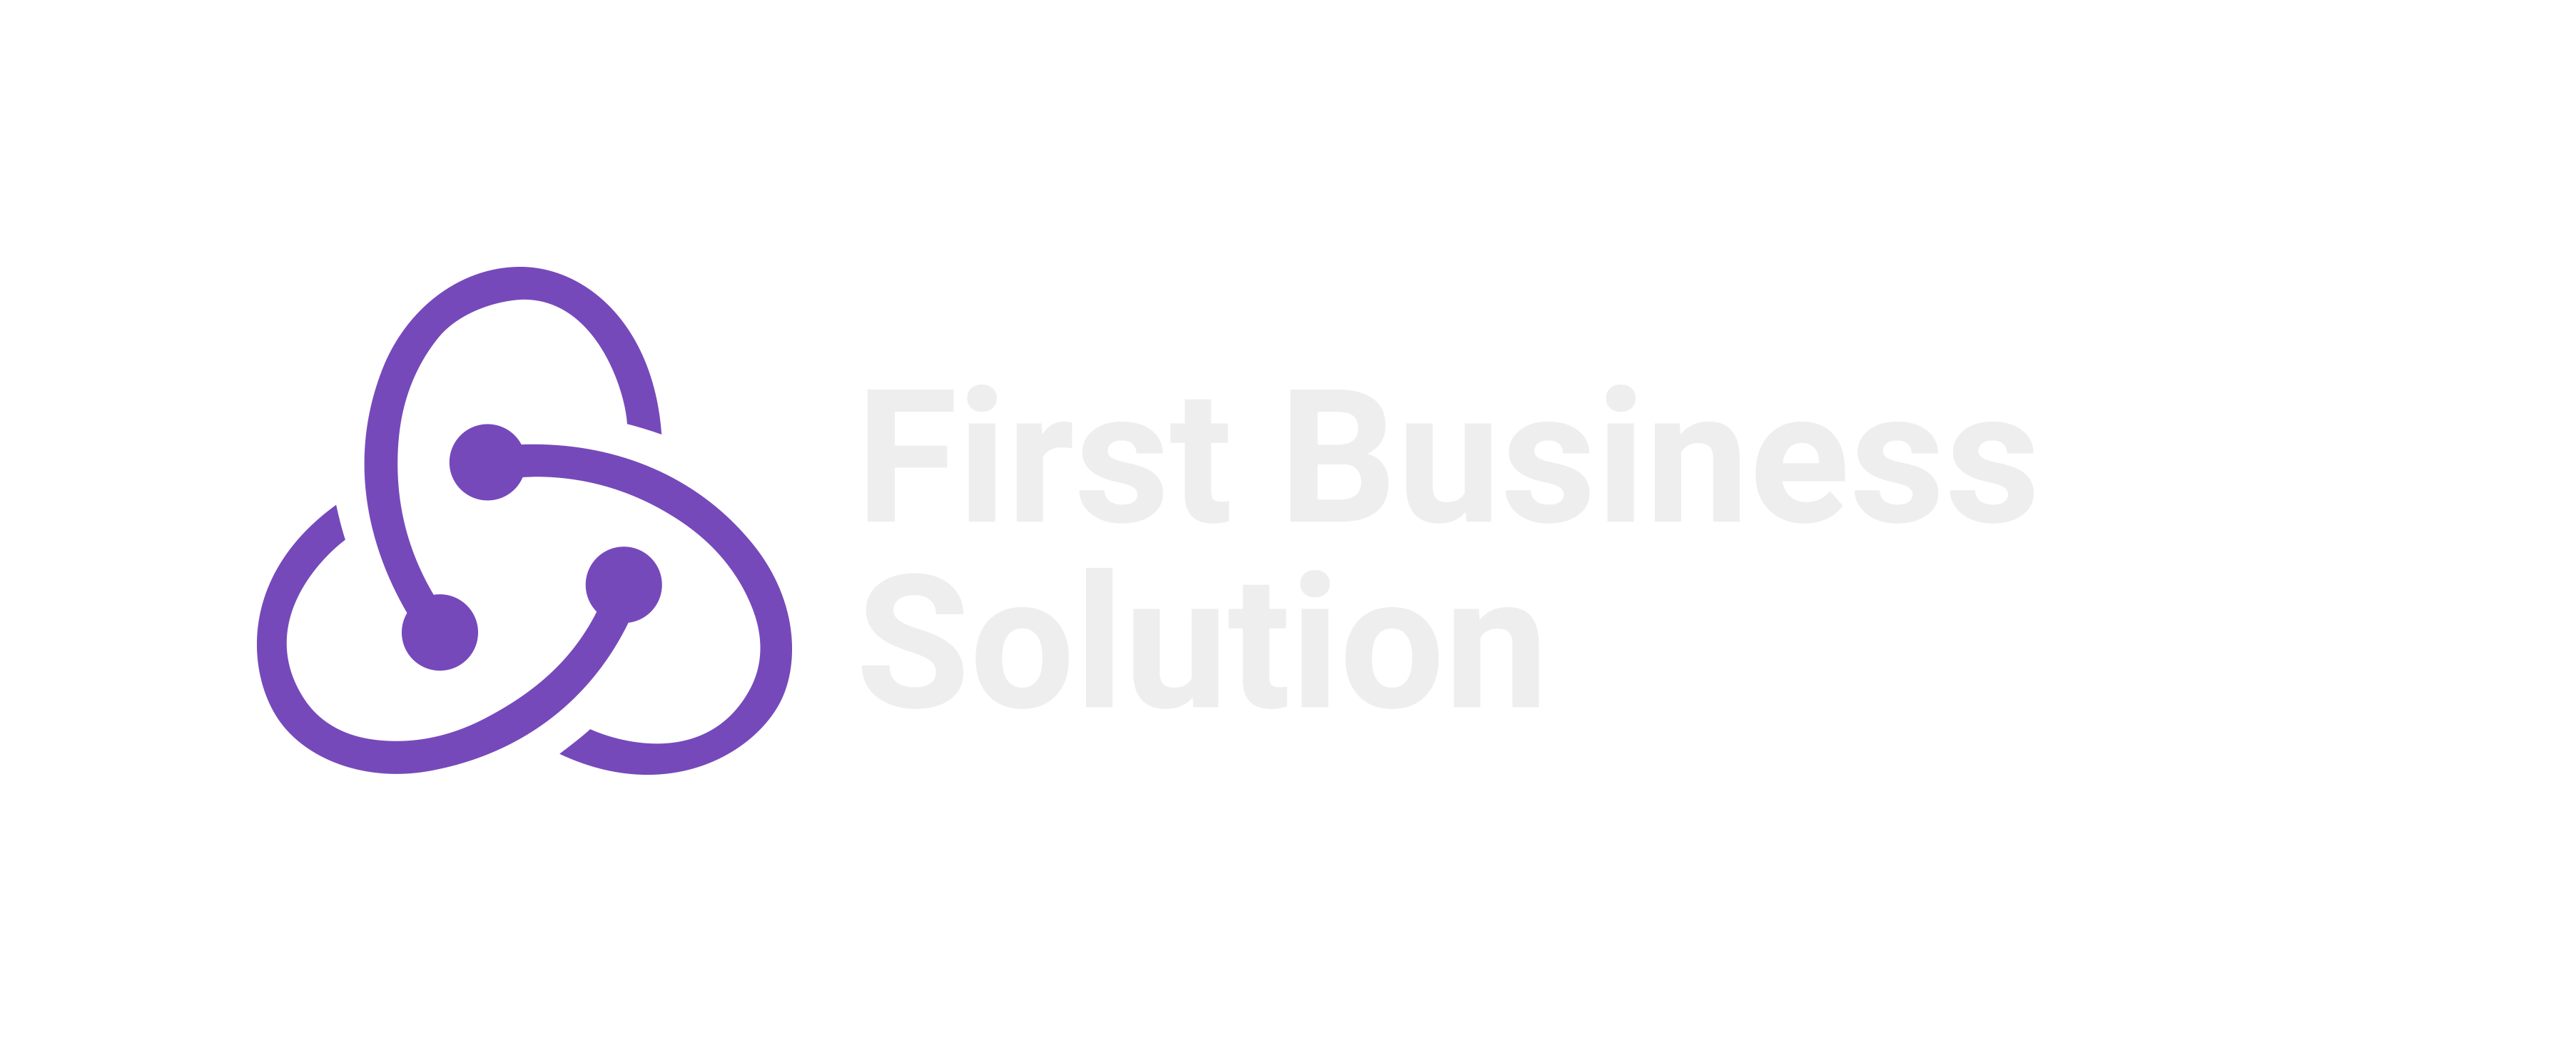 First Business Solution